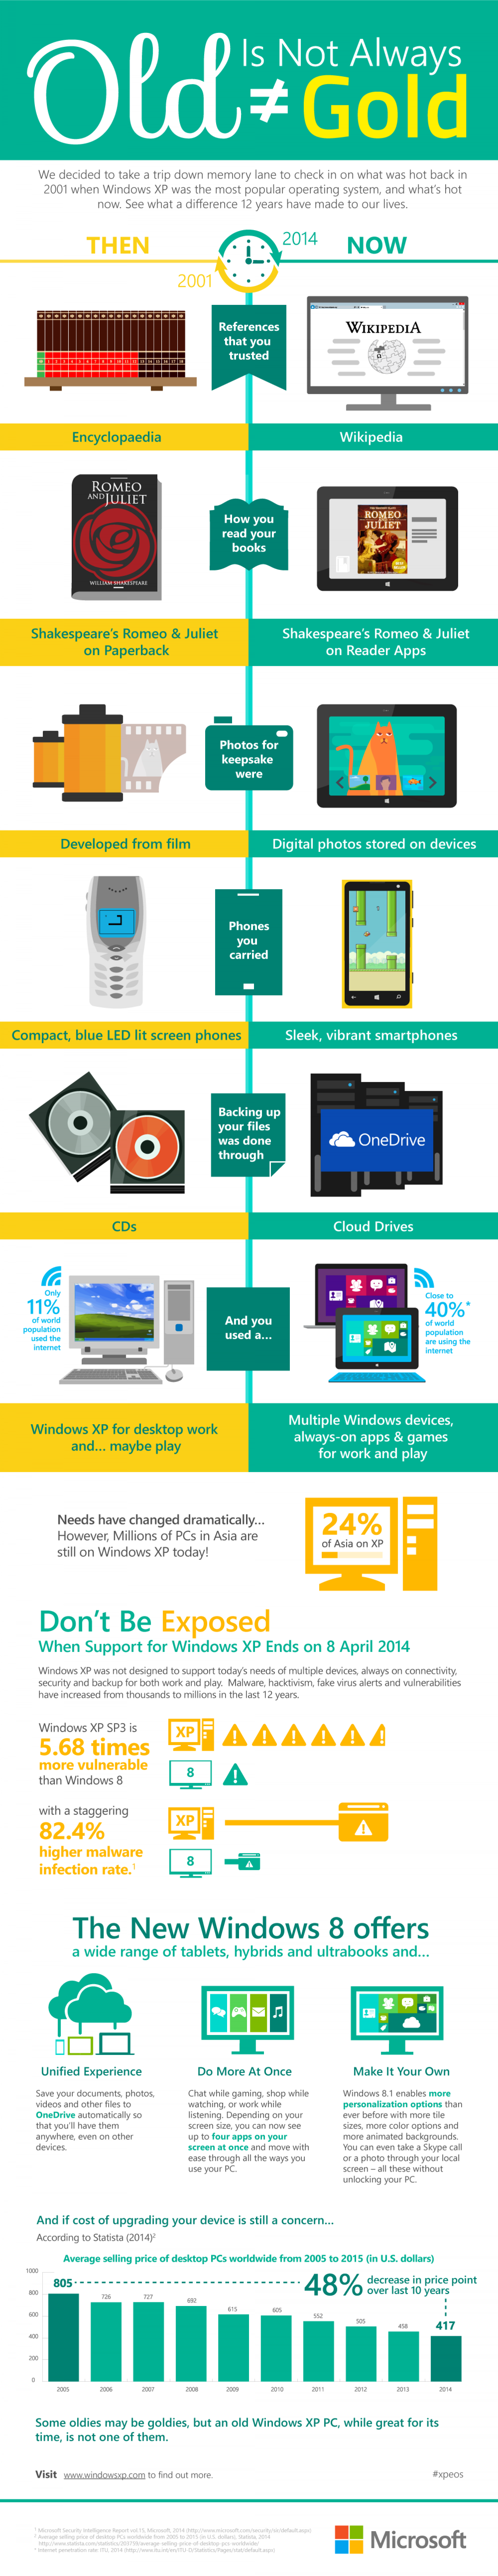 Old is not always Gold Infographic